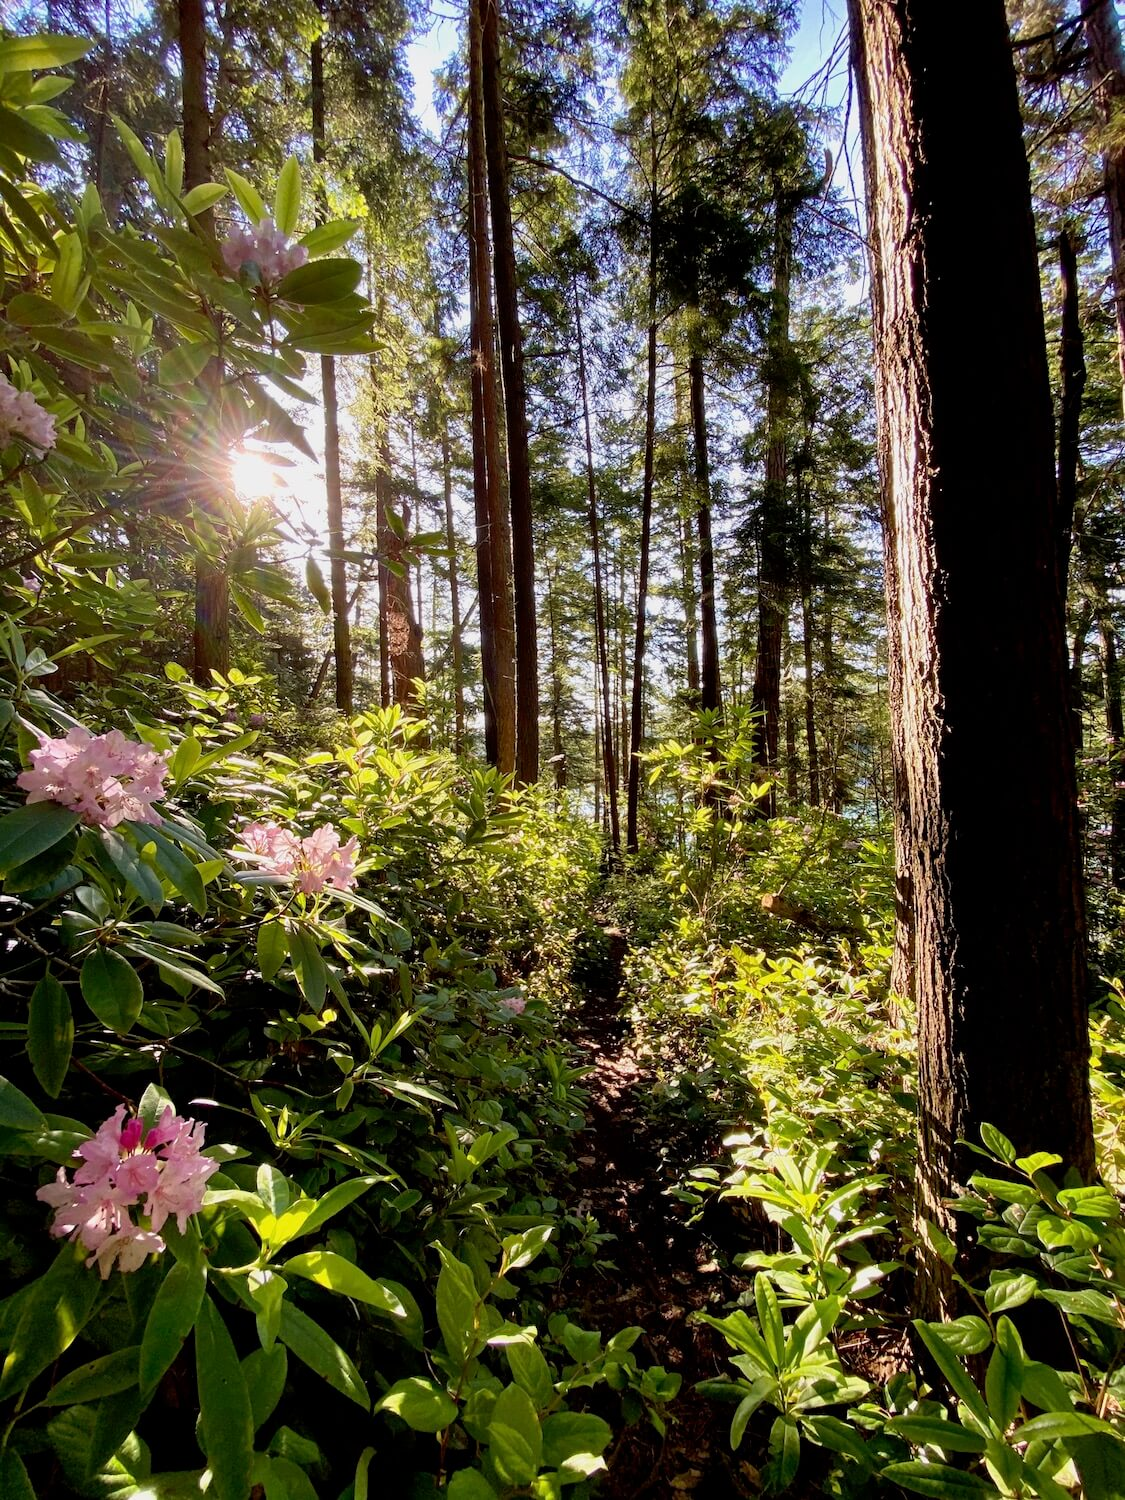 This early morning shot captures the sun rising through a dense forest of mid size fir trees.  In the foreground a rhododendron bush blooms with pink flowers while the rays shine against the textured bark of a doulgas fir tree.